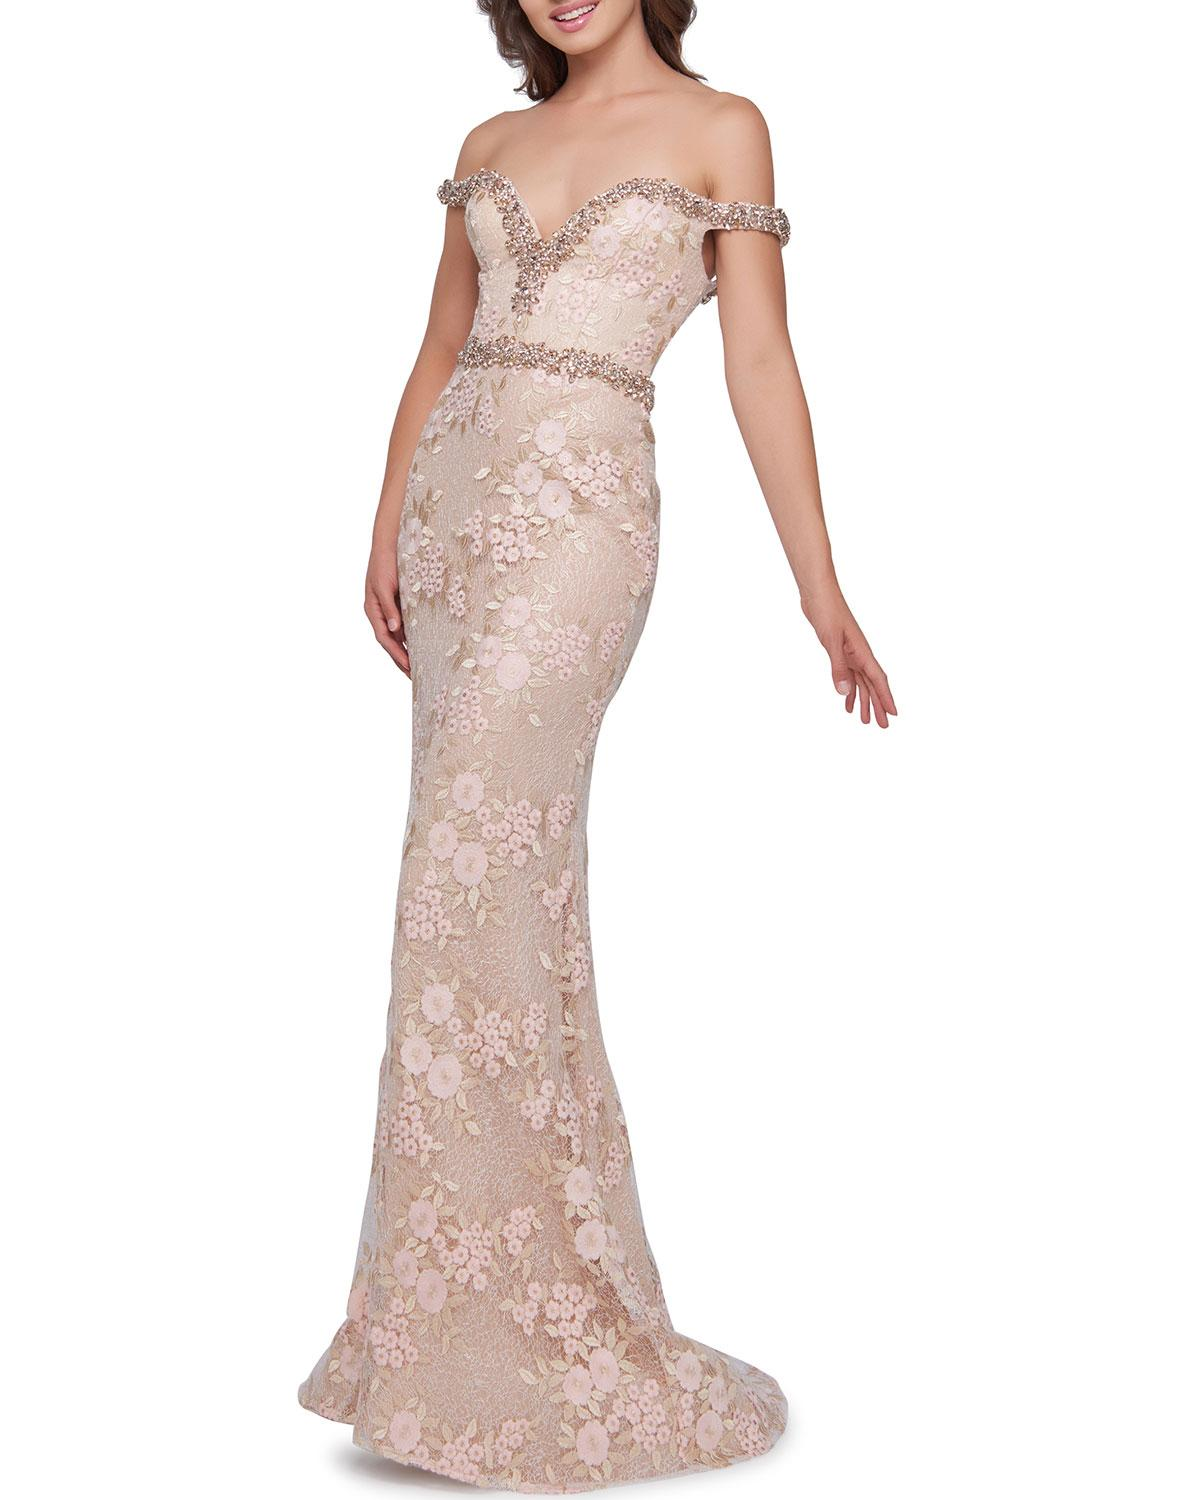 75e7258ad8 Lyst - Mac Duggal Off-the-shoulder Beaded Trim Lace & Floral ...